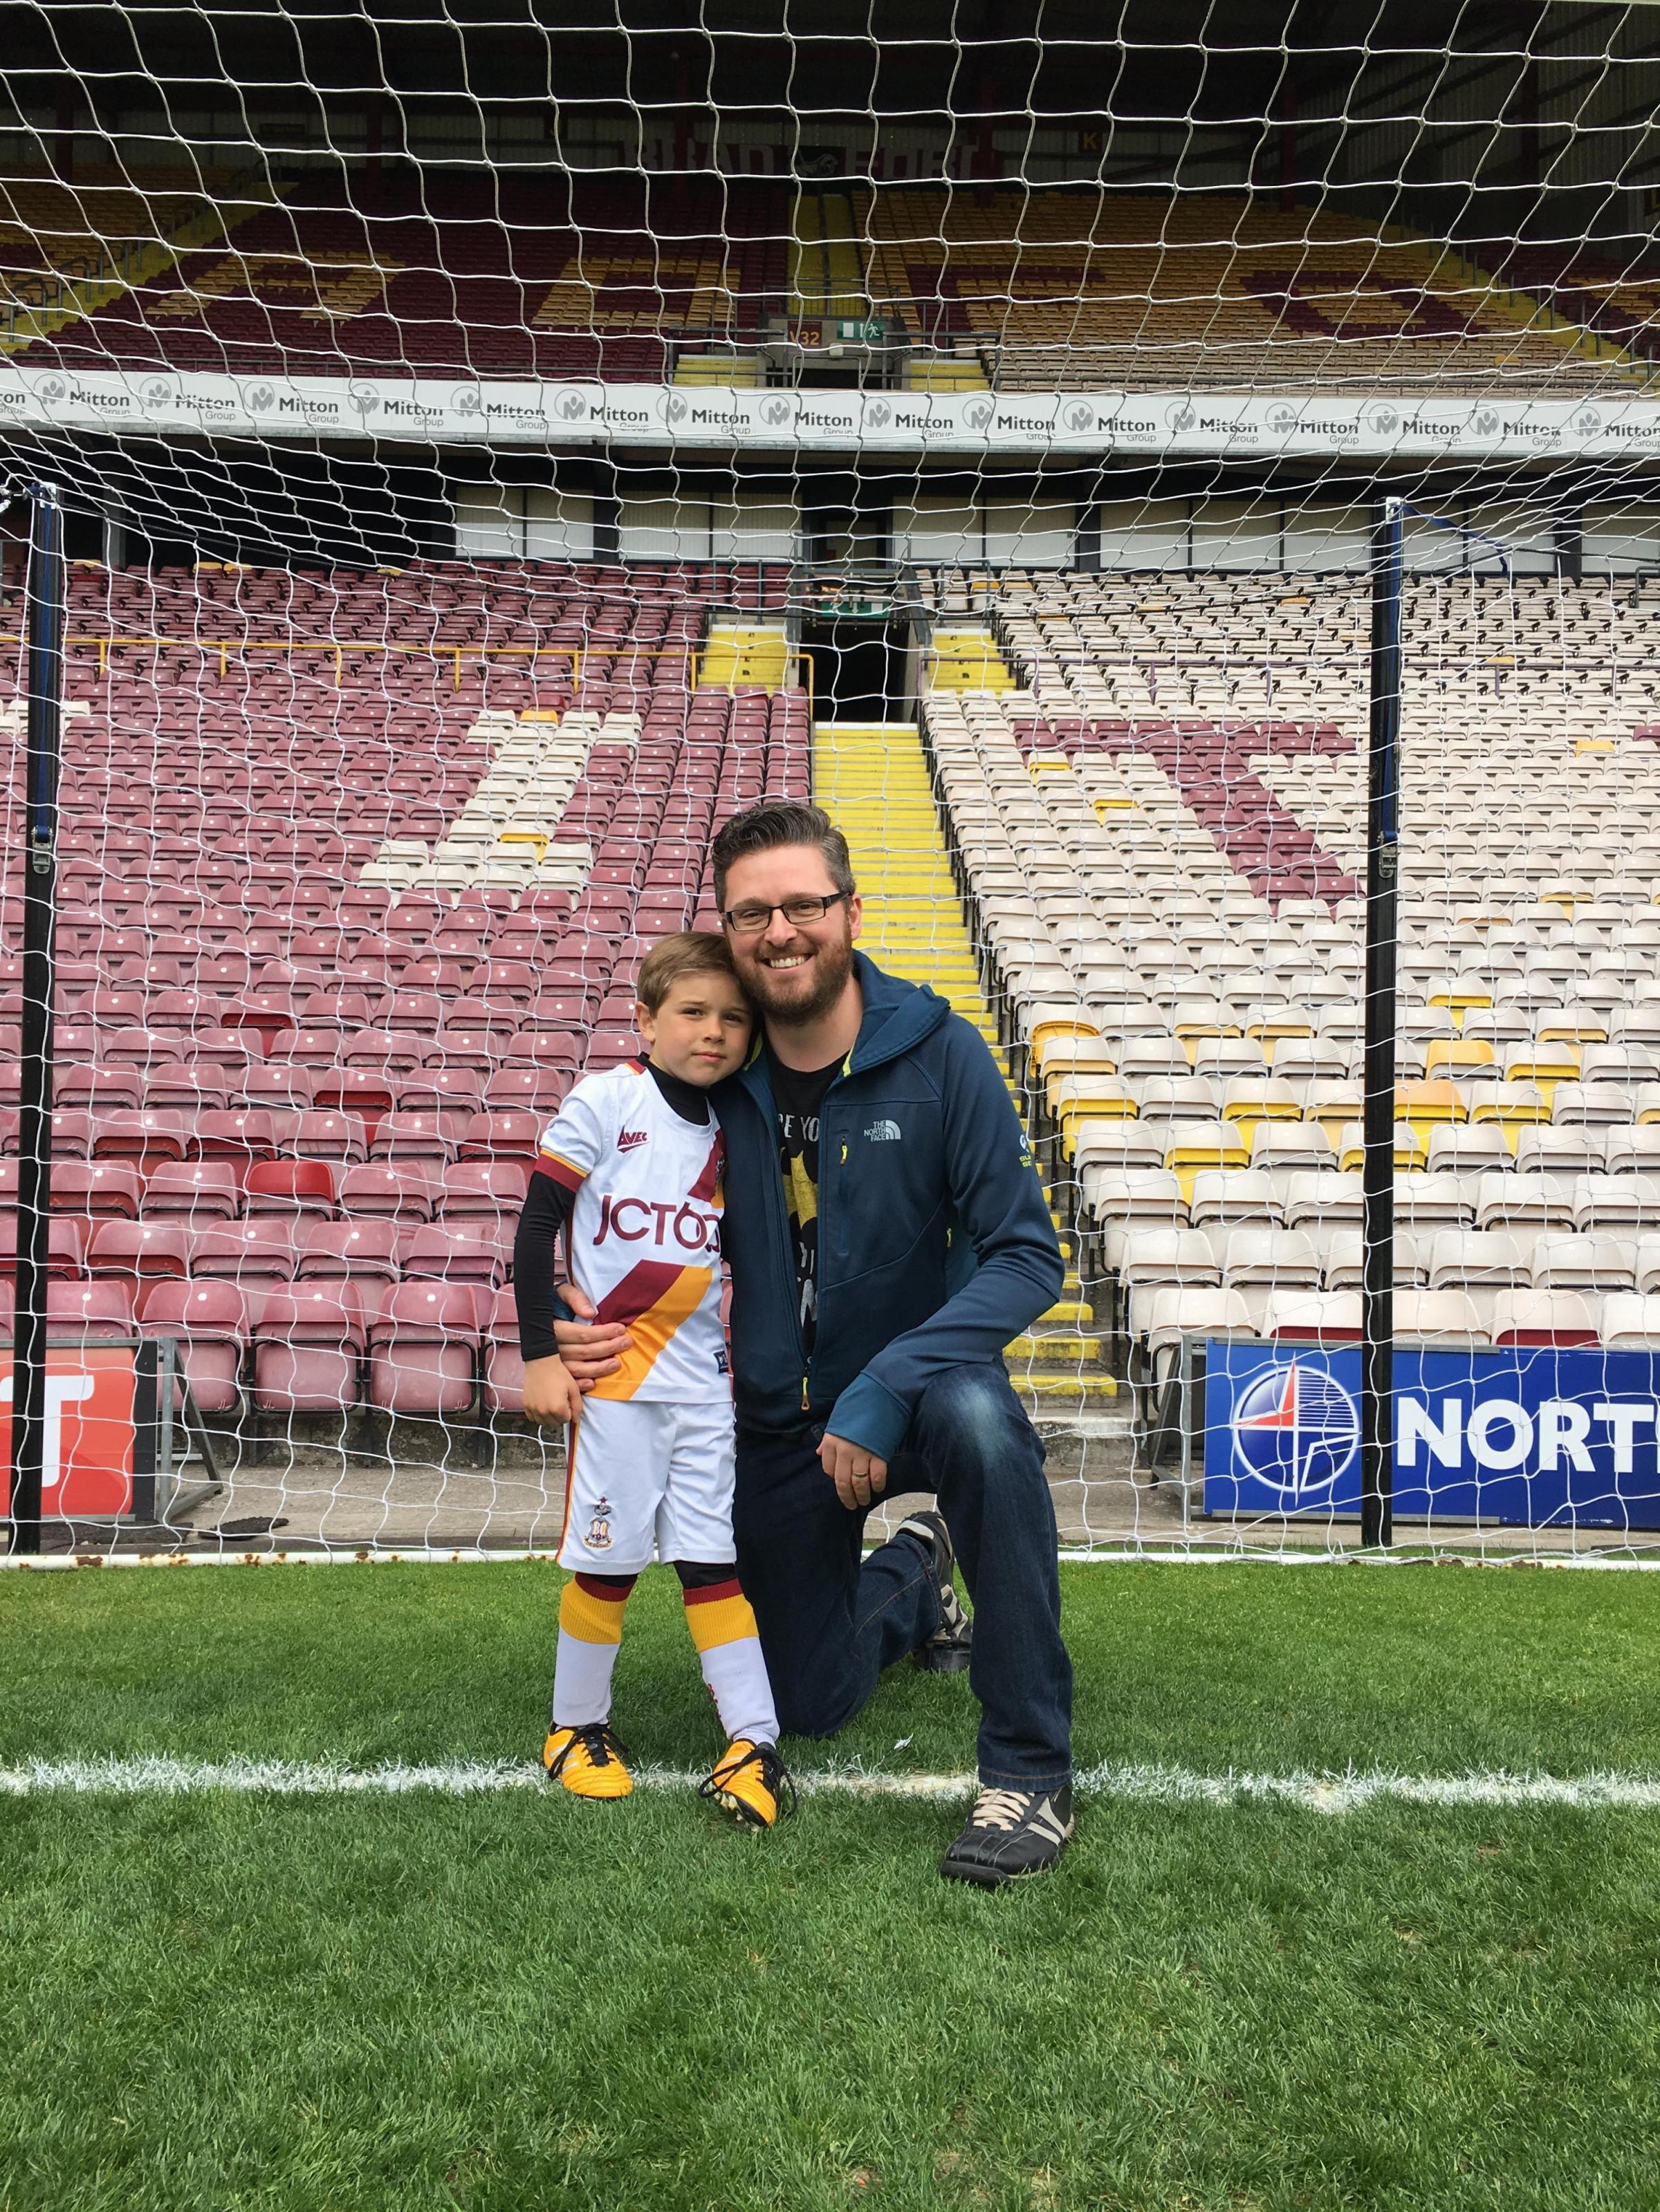 Bradford Telegraph and Argus: Good Luck for Saturday... so excited for my sons first trip to Wembley!Enjoy the game and give 100% and I'm sure we will get the result we deserve